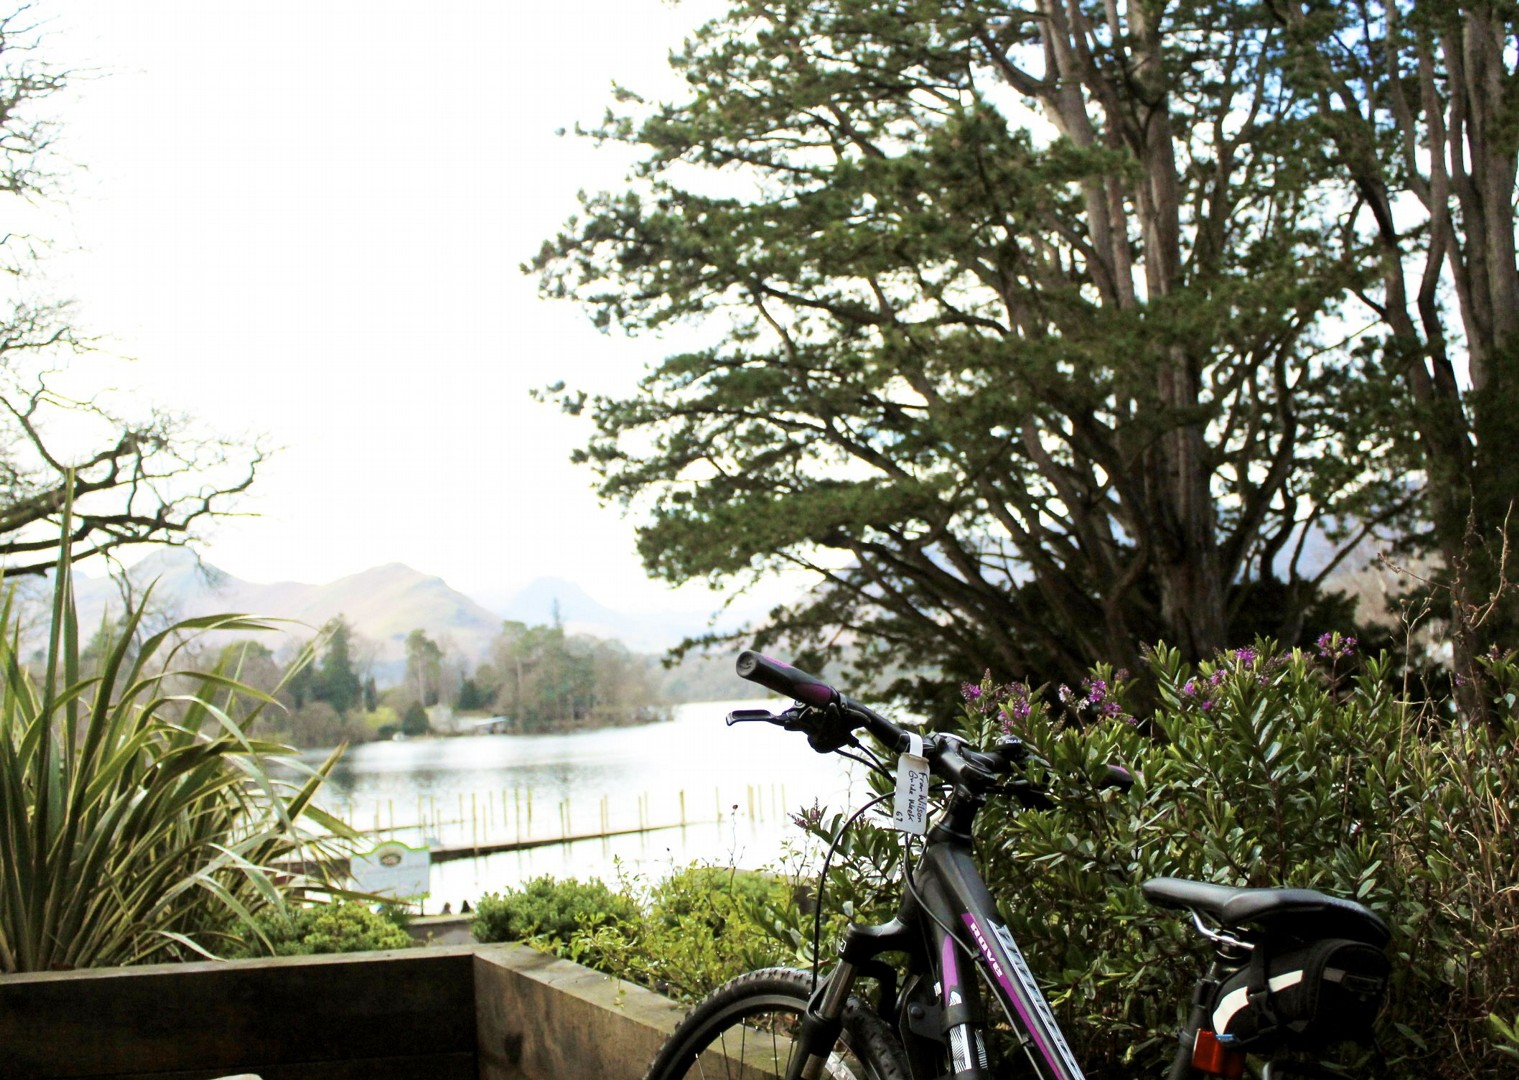 Lake District-Derwent-Water-Self-Guided-Leisure-Cycling-Holiday-4.jpg - UK - Lake District - Derwent Water - Self-Guided Leisure Cycling Holiday - Leisure Cycling